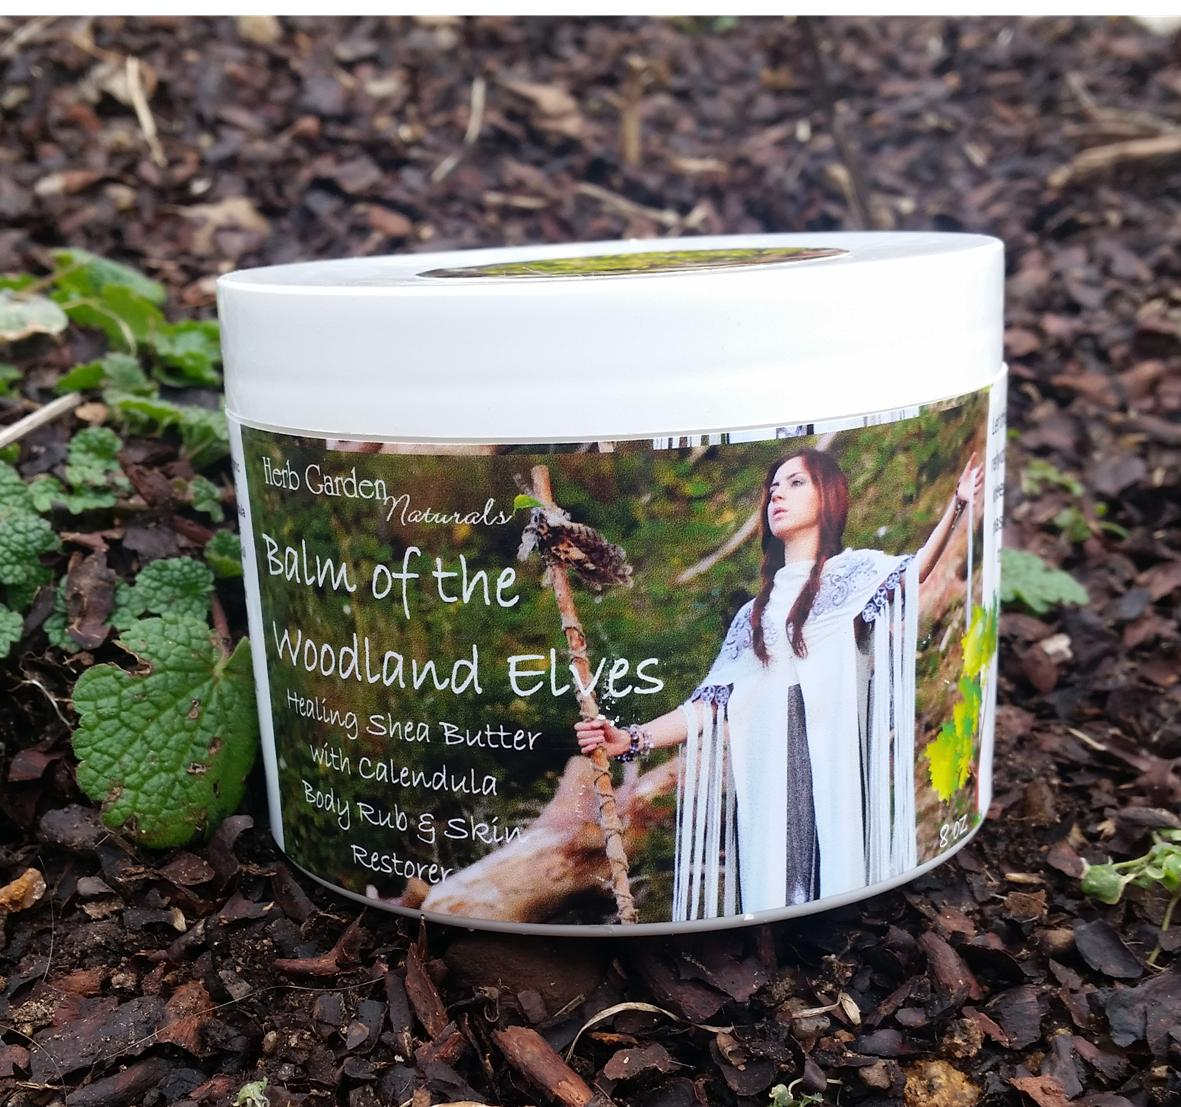 Balm of the Woodland Elves Organic, Natural Skin Hydration